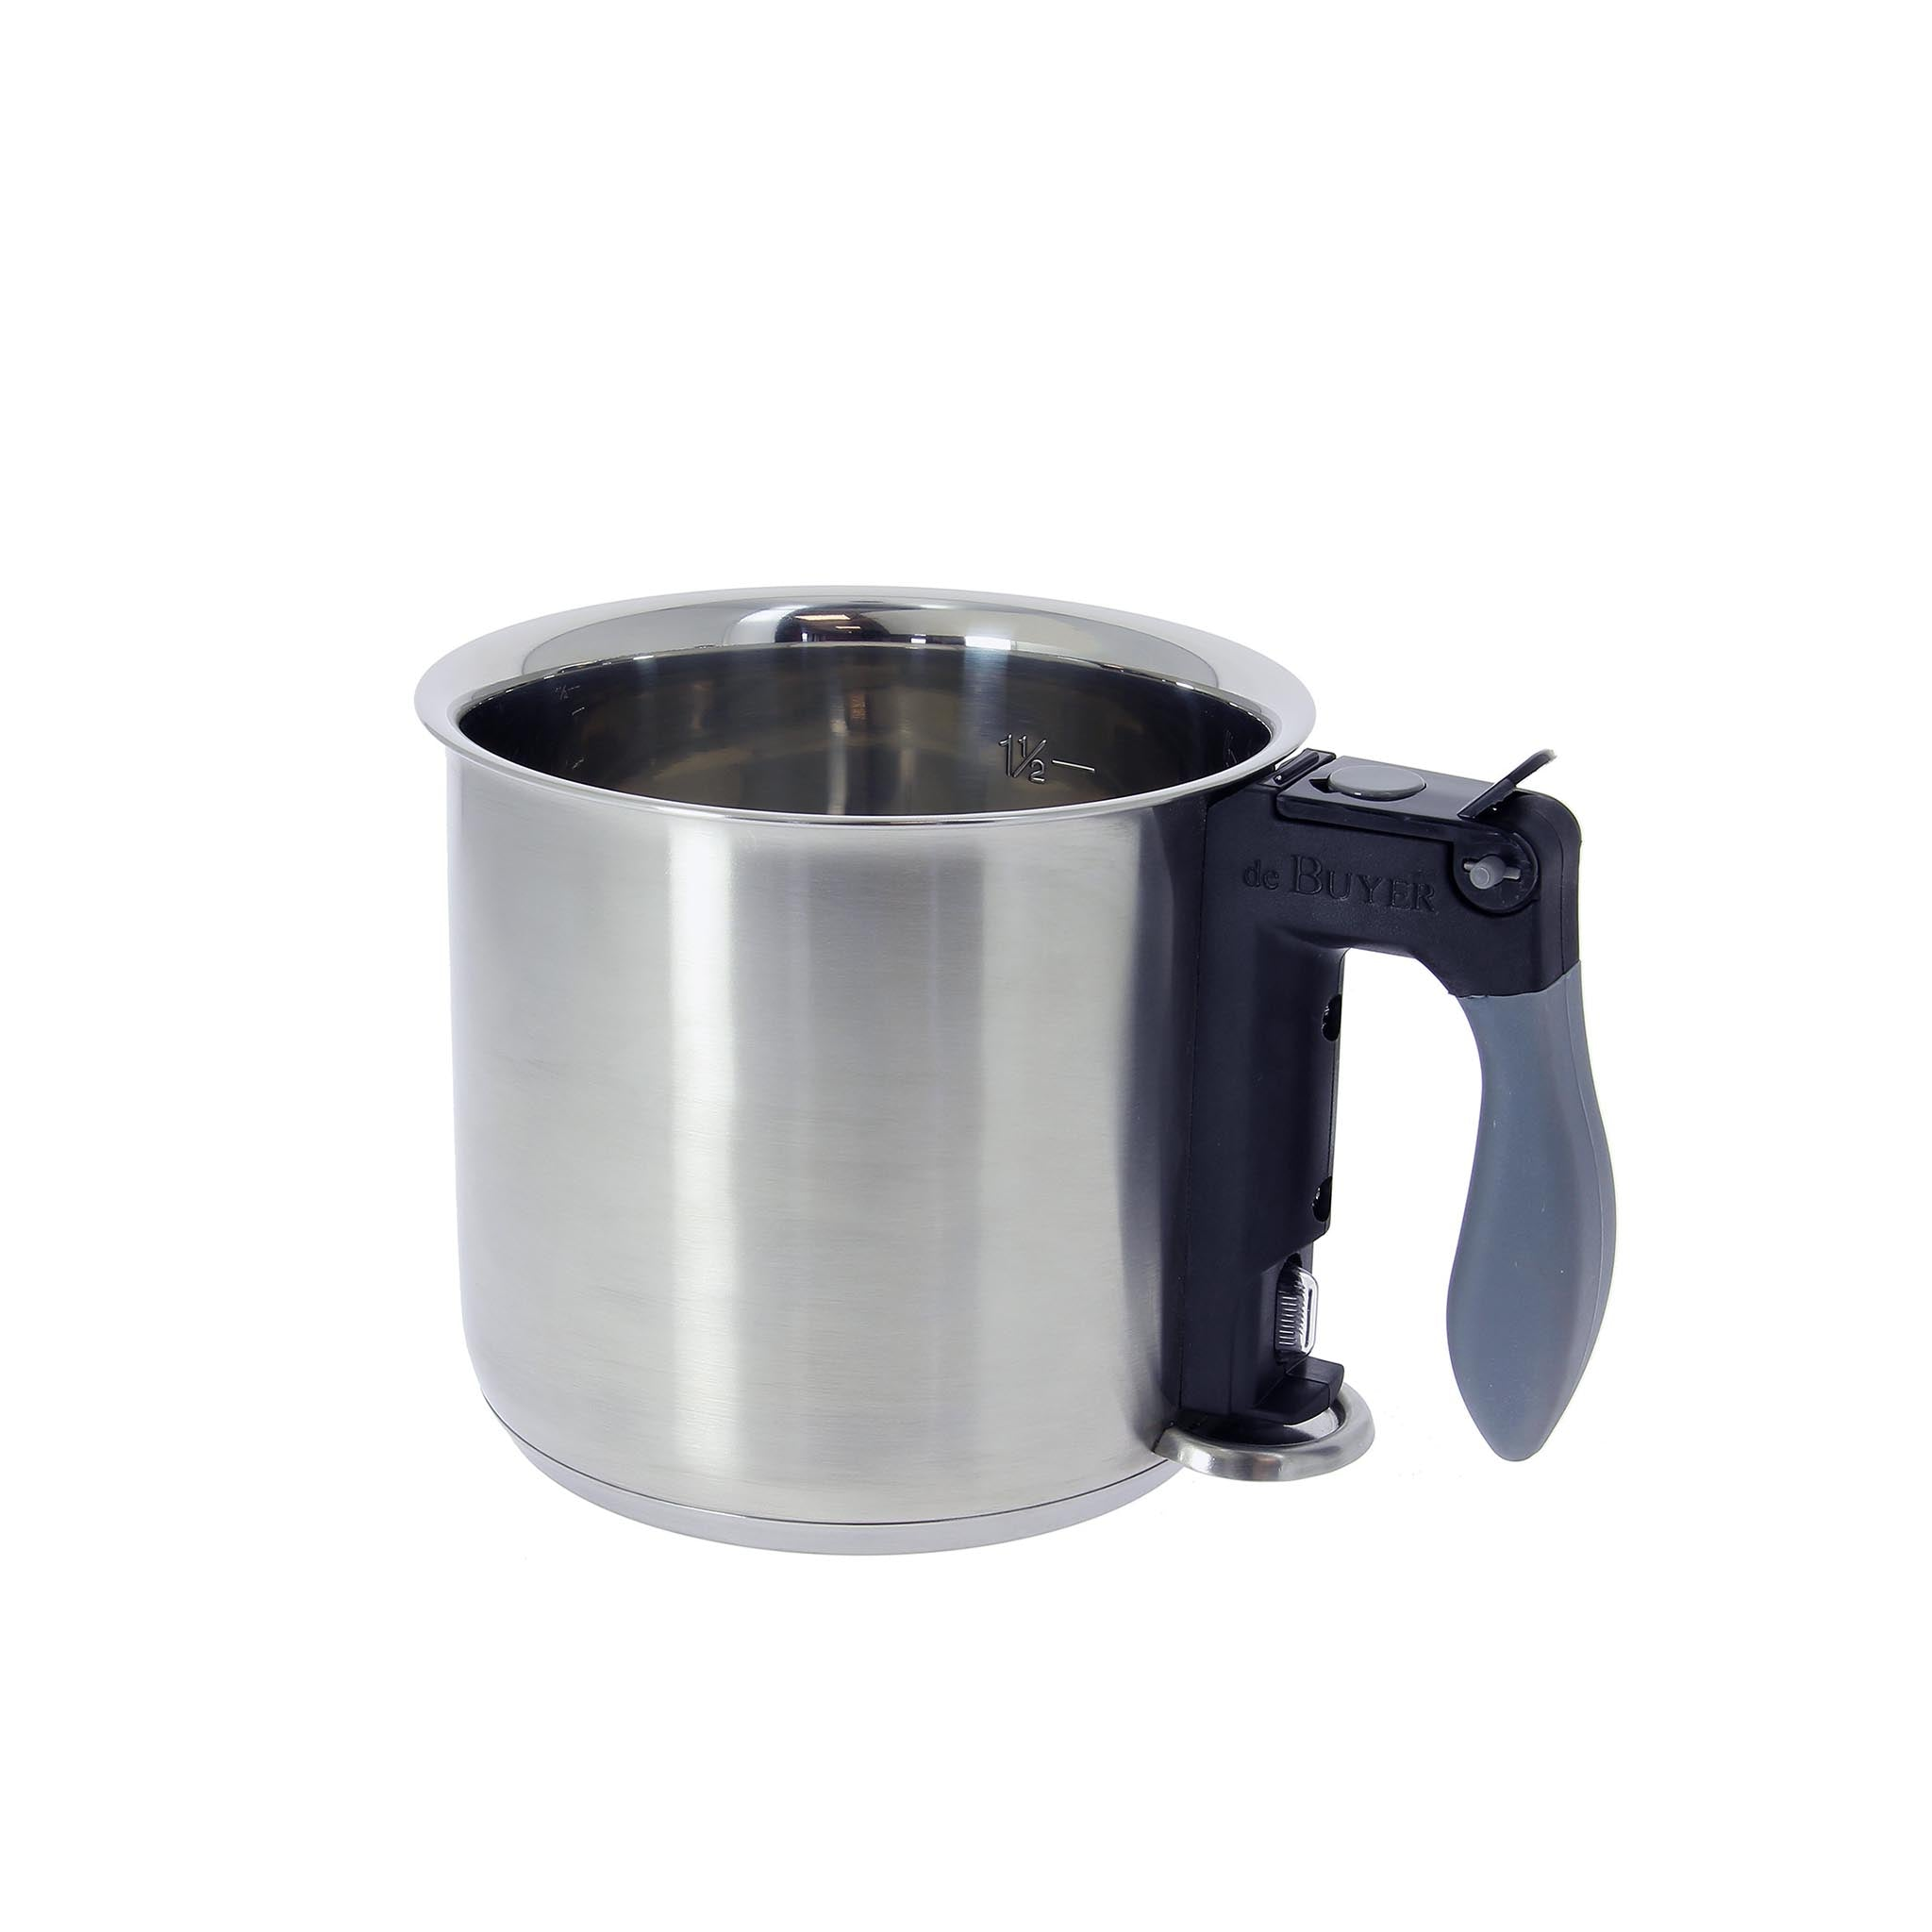 De Buyer Stainless Steel Bain Marie Cooker Cookware Pots & Pans French Food